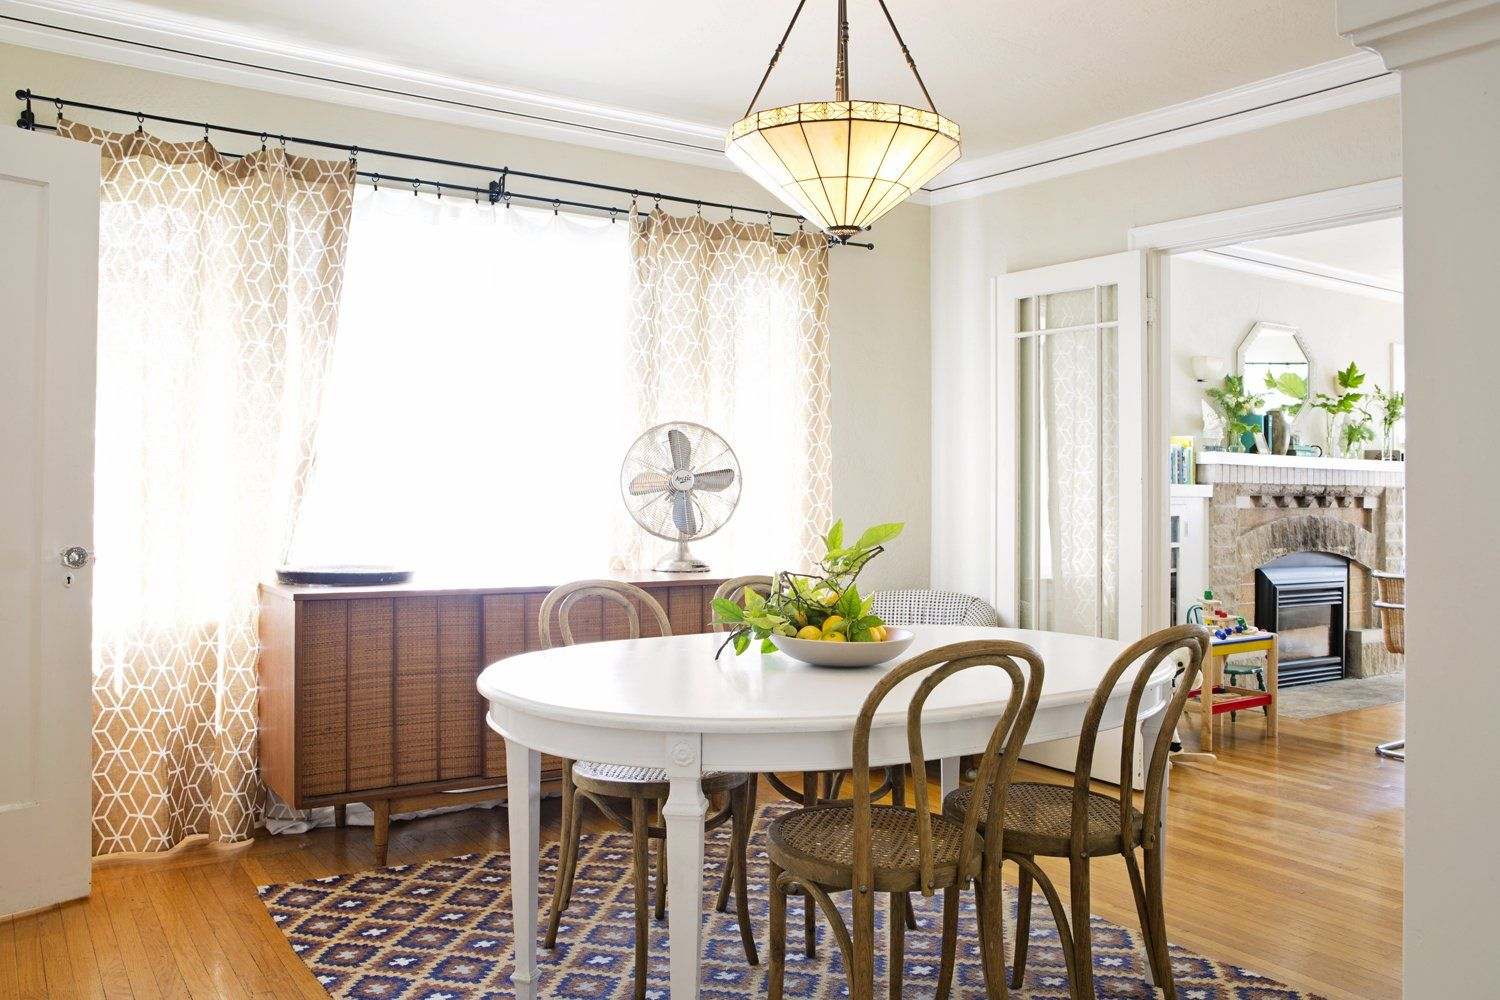 Paint Colors That Match This Apartment Therapy Photo SW 6033 Bateau Brown 6069 French Roast 6116 Tatami Tan 6073 Perfect Greige 7626 Zurich